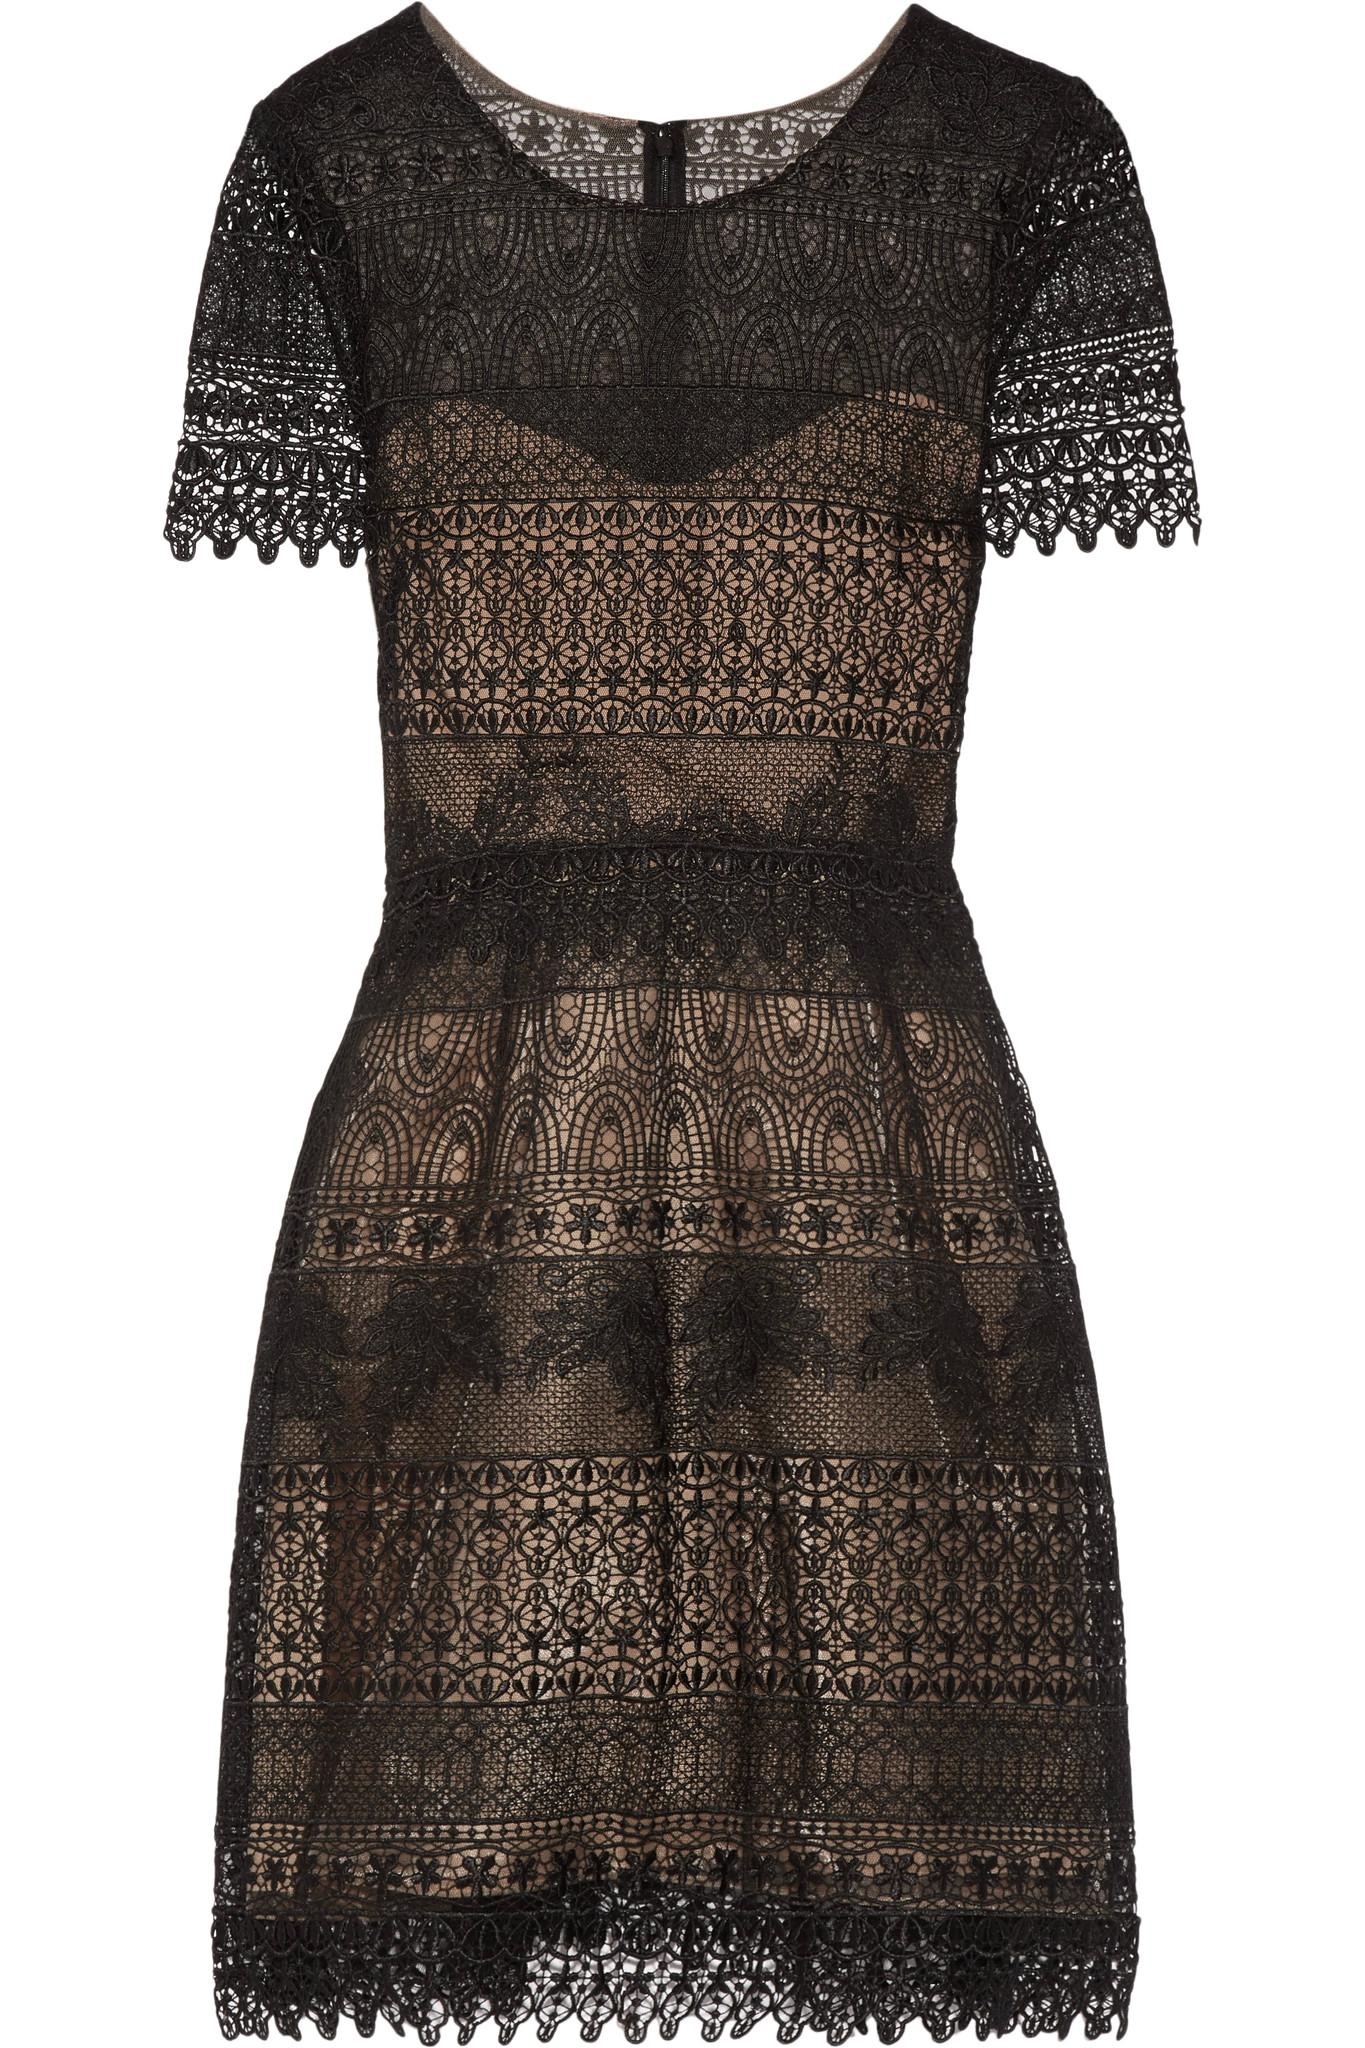 Marchesa Notte Woman Two-tone Guipure Lace And Tulle Mini Dress Black Size 2 Marchesa aCX29ndfuD